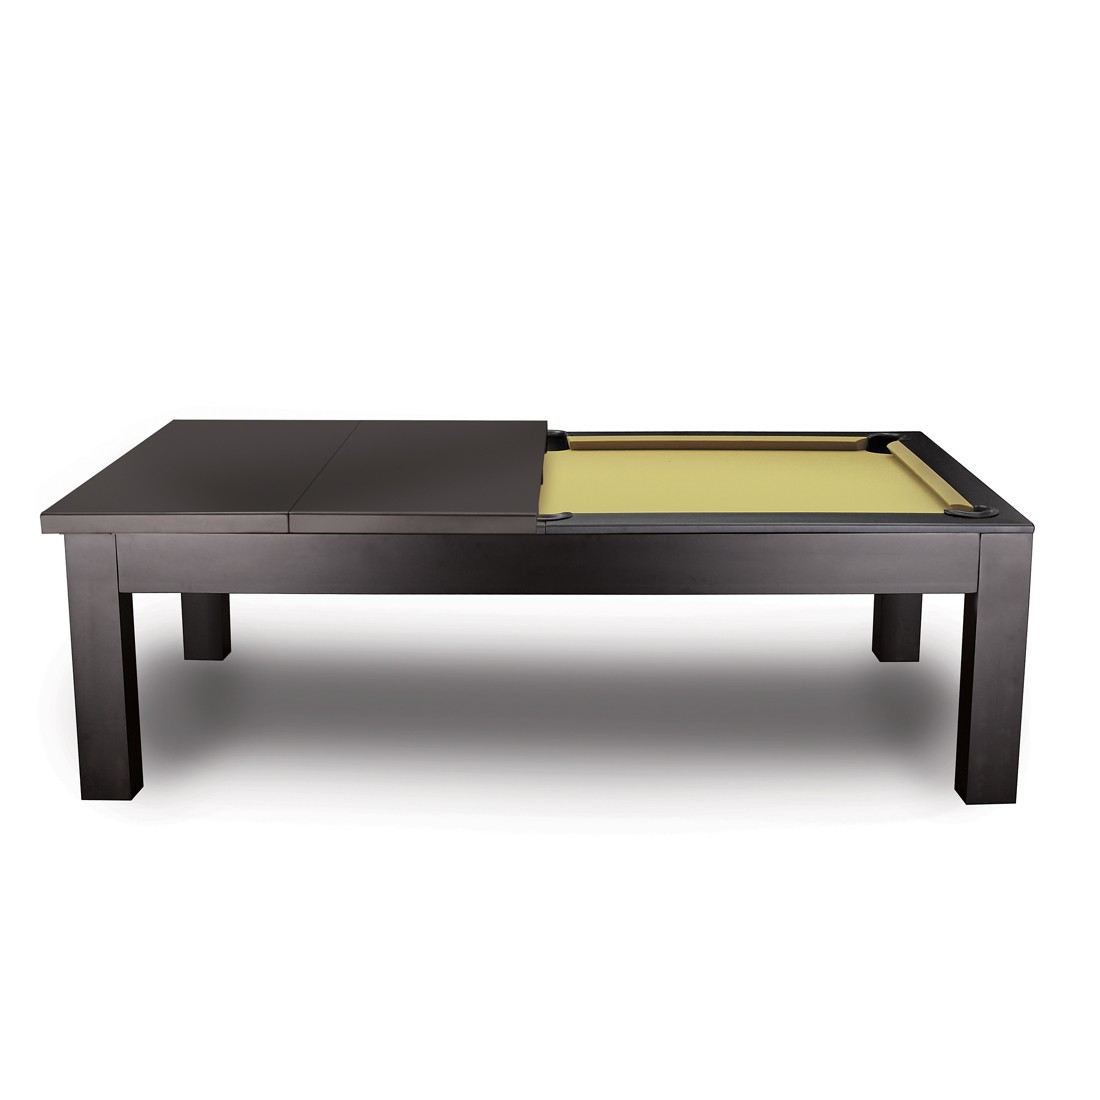 The Penelope 8u2032 Pool Table (Dark Walnut) W/Dining Top